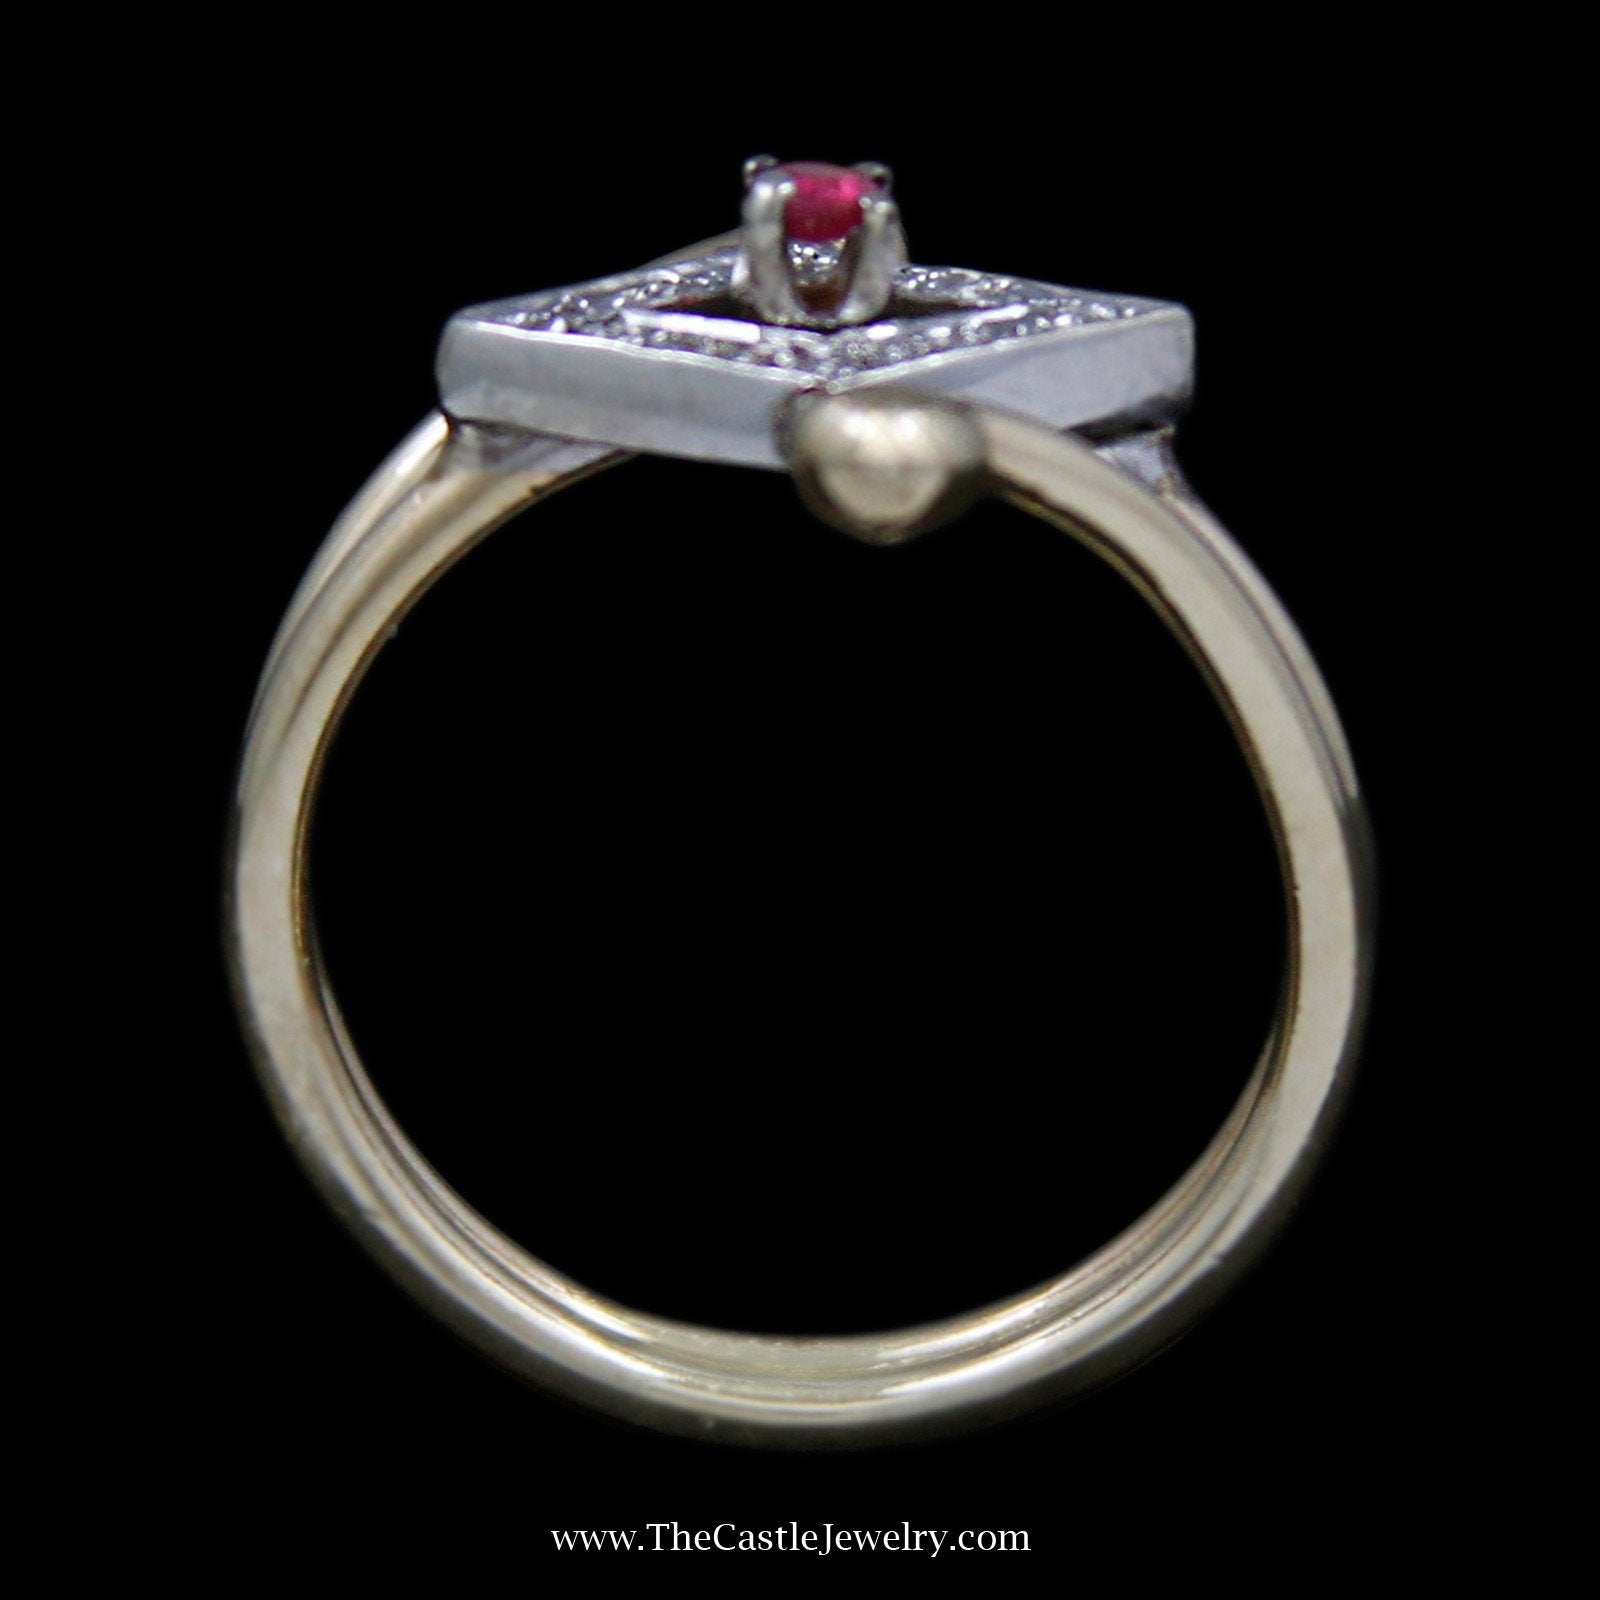 Unique Round Ruby Ring with Sideways Diamond Bezel with Round Diamonds-1